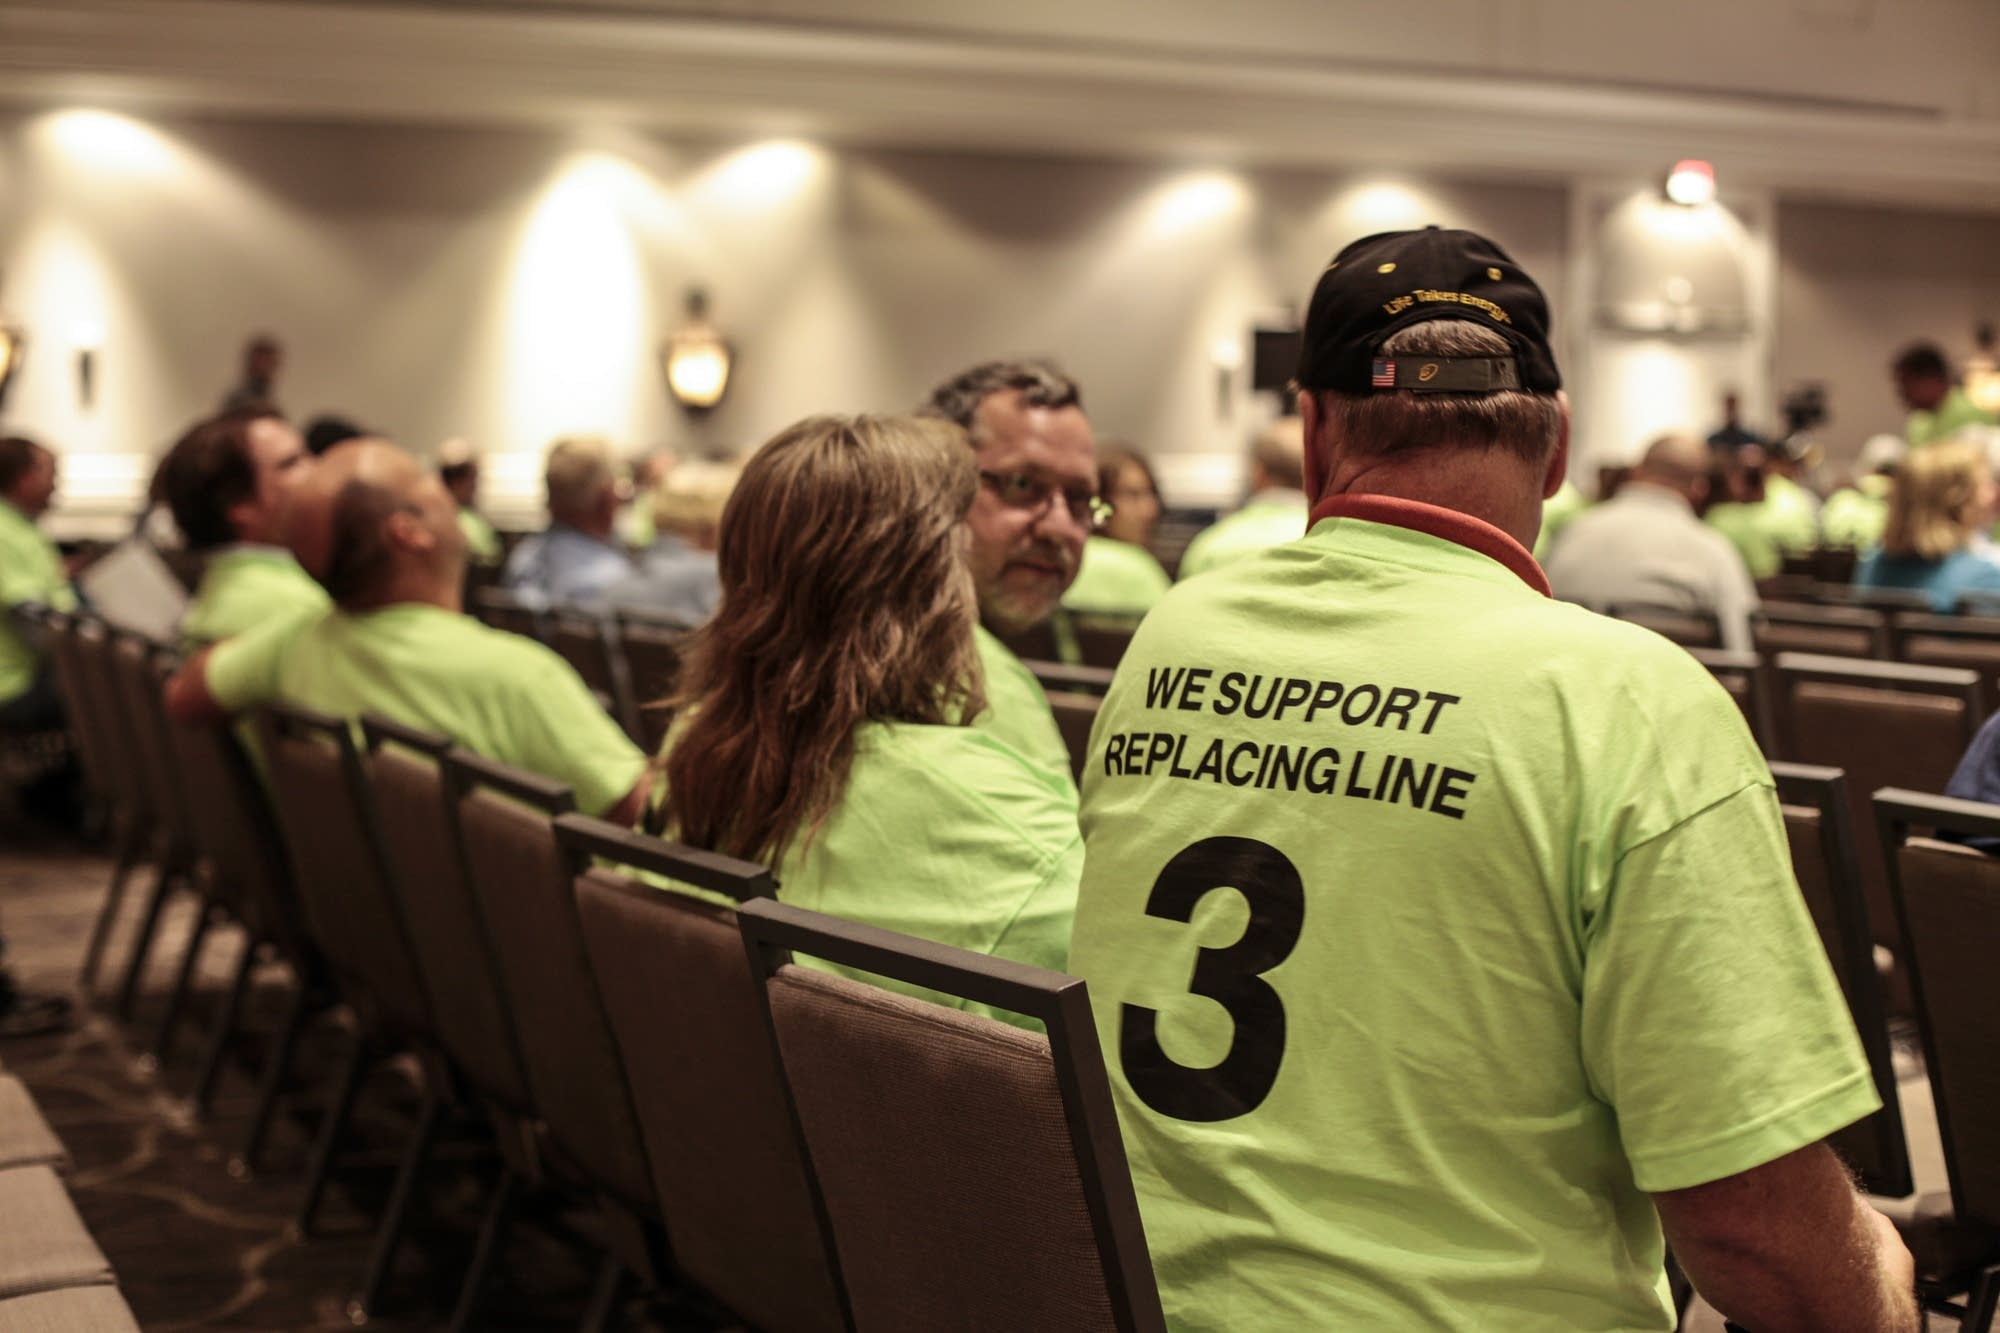 Line 3 supporters wear green shirts to show their support